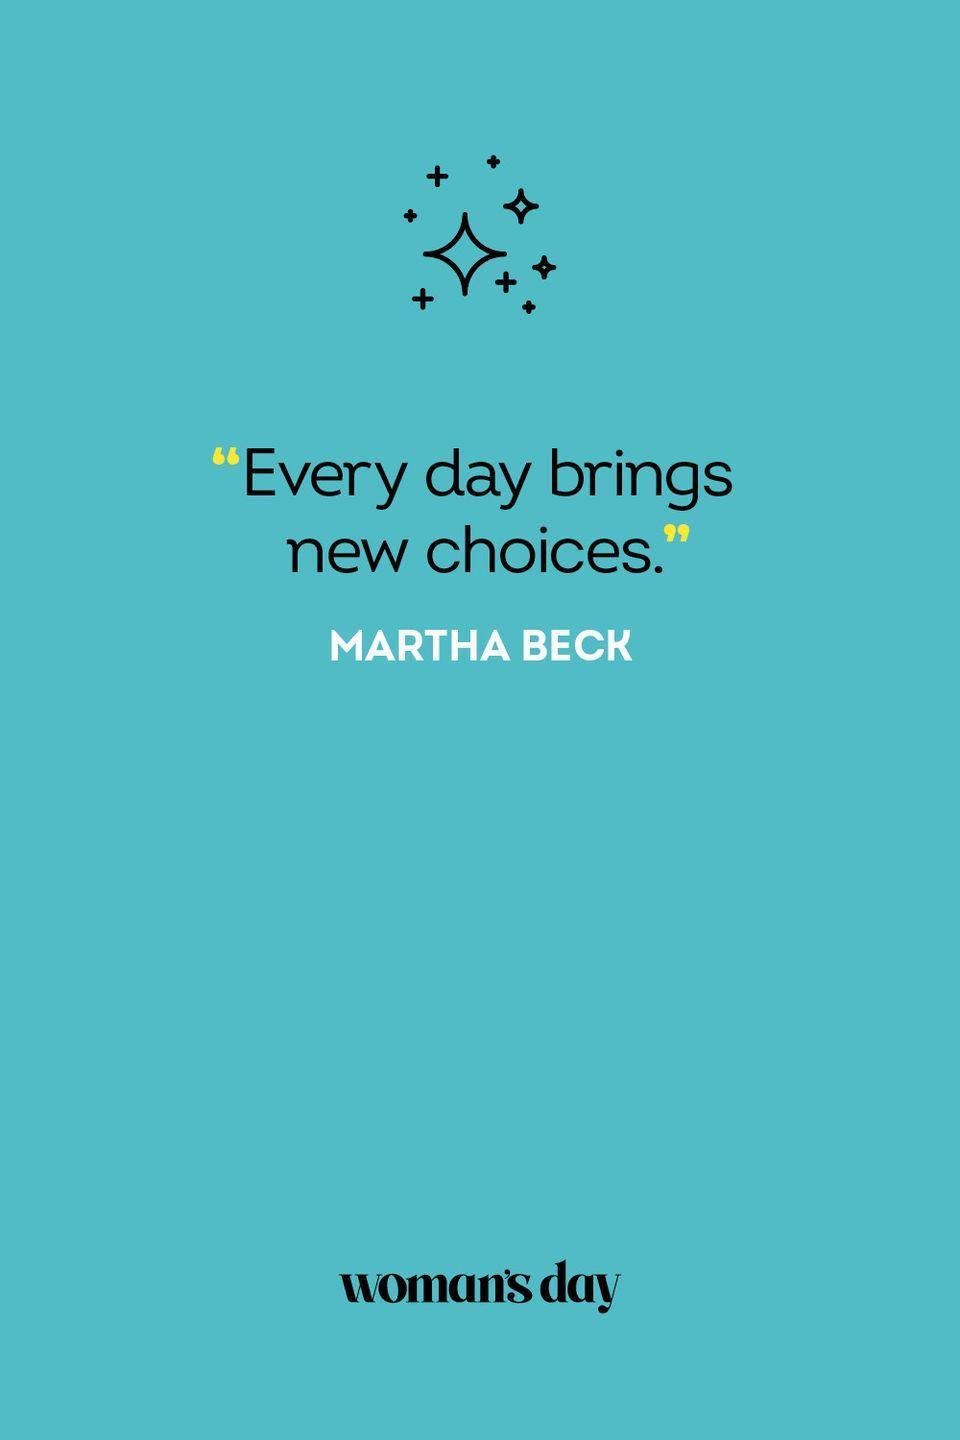 <p>Every day brings new choices.</p>